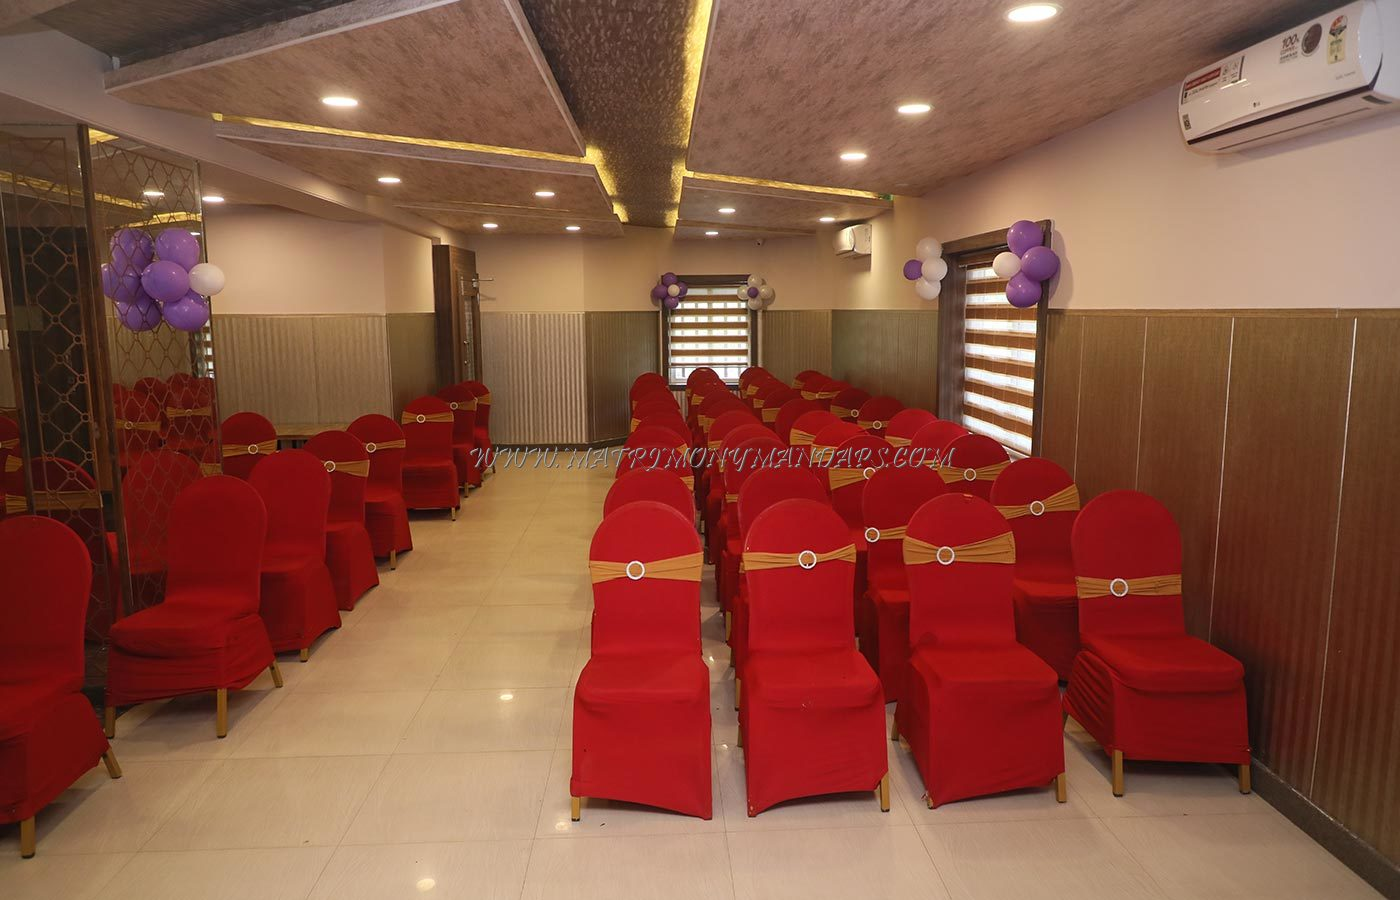 Find the availability of the Sri Udupi Party Hall (A/C) in Indira Nagar, Bangalore and avail special offers